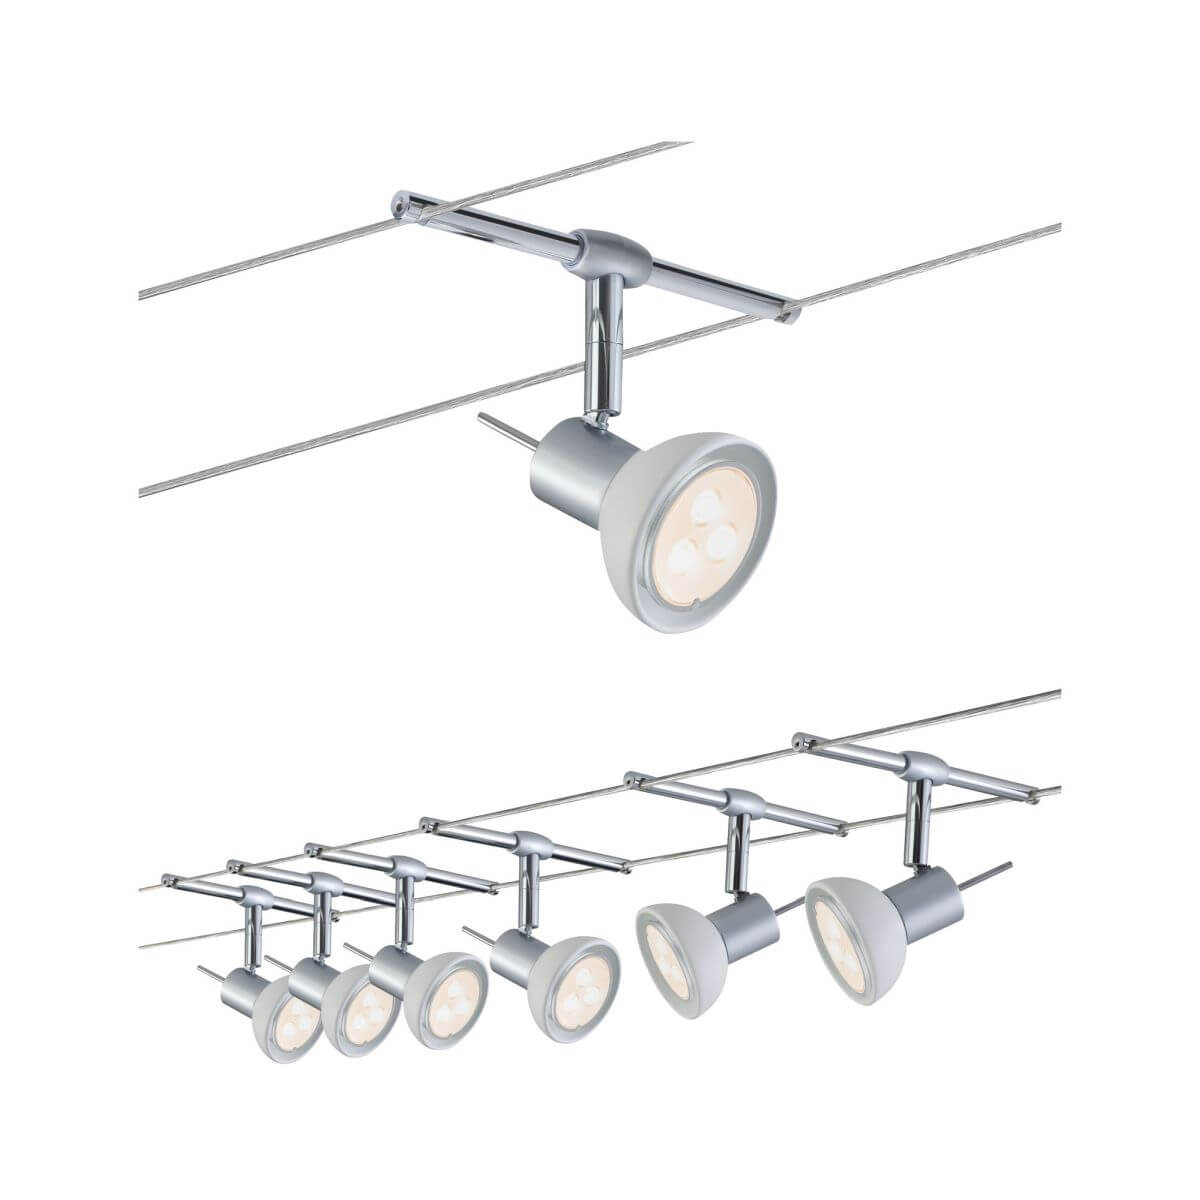 Paulmann Seilsystem Sheela, 6 x 4W, GU5,3, 10 m, 2,5 mm², Warmweiß,  Chrom matt | Opal